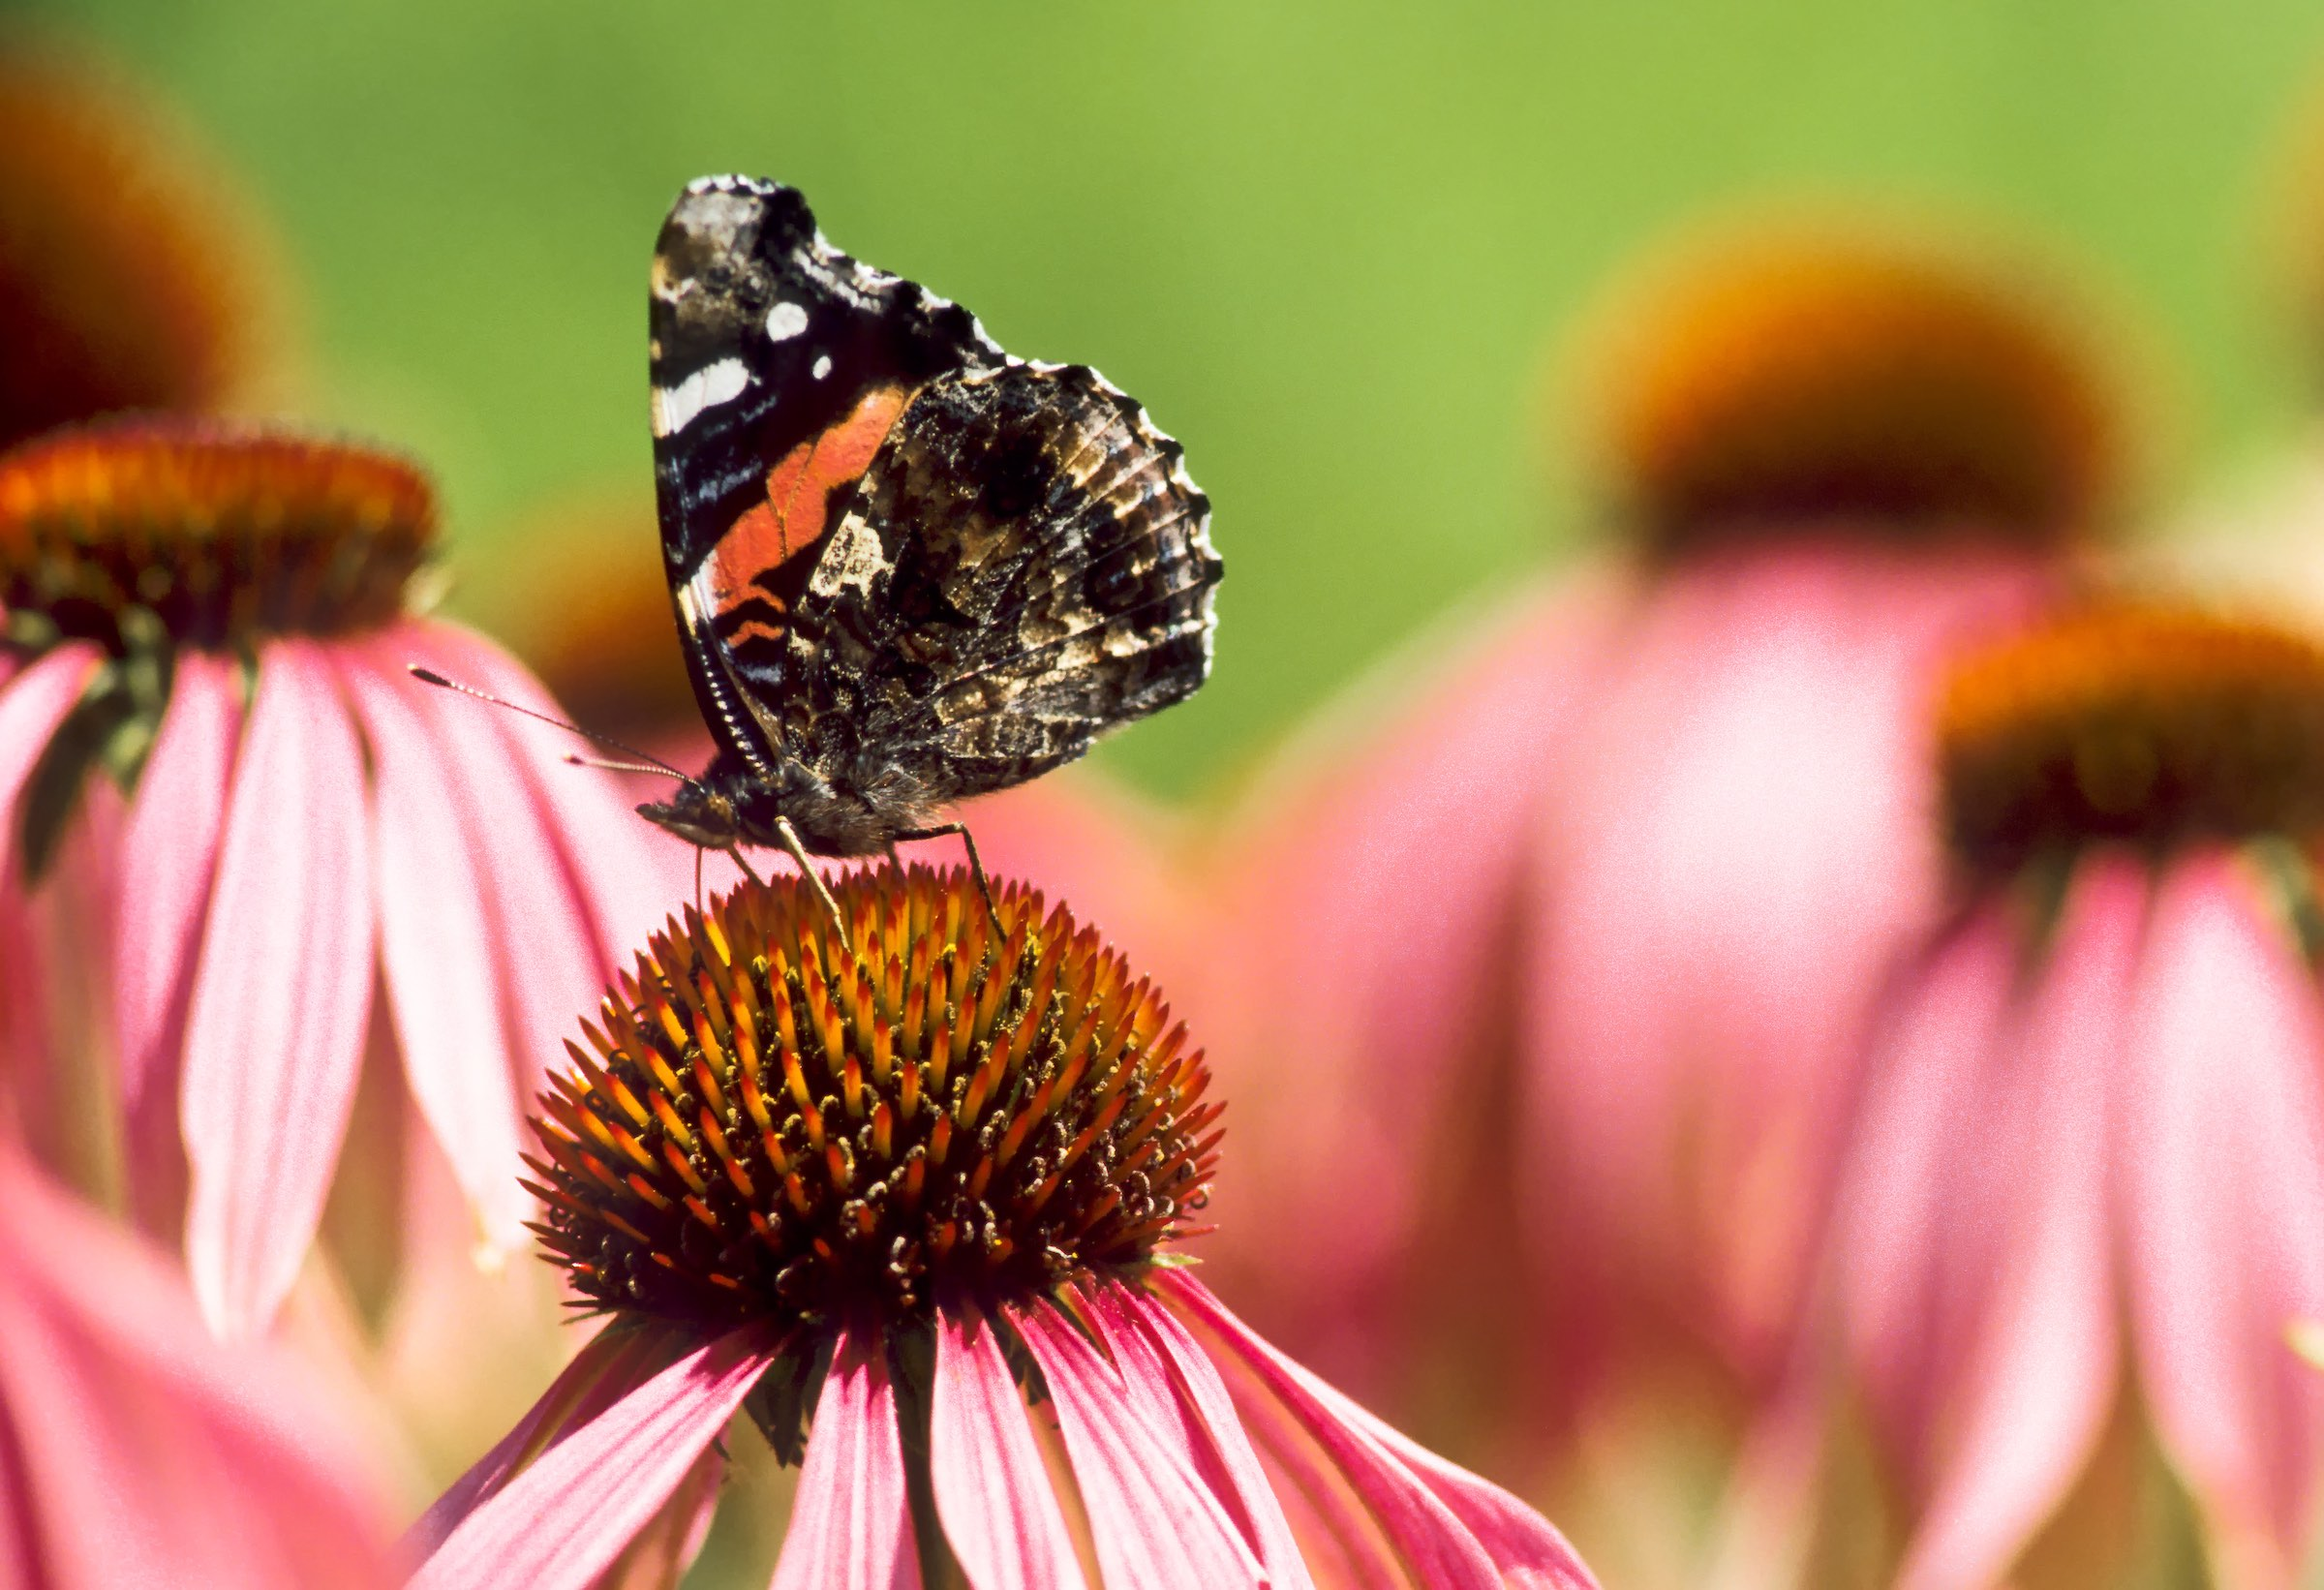 RED ADMIRAL BUTTERFLY ON CONE FLOWER. © GIVEN PHOTOGRAPHY